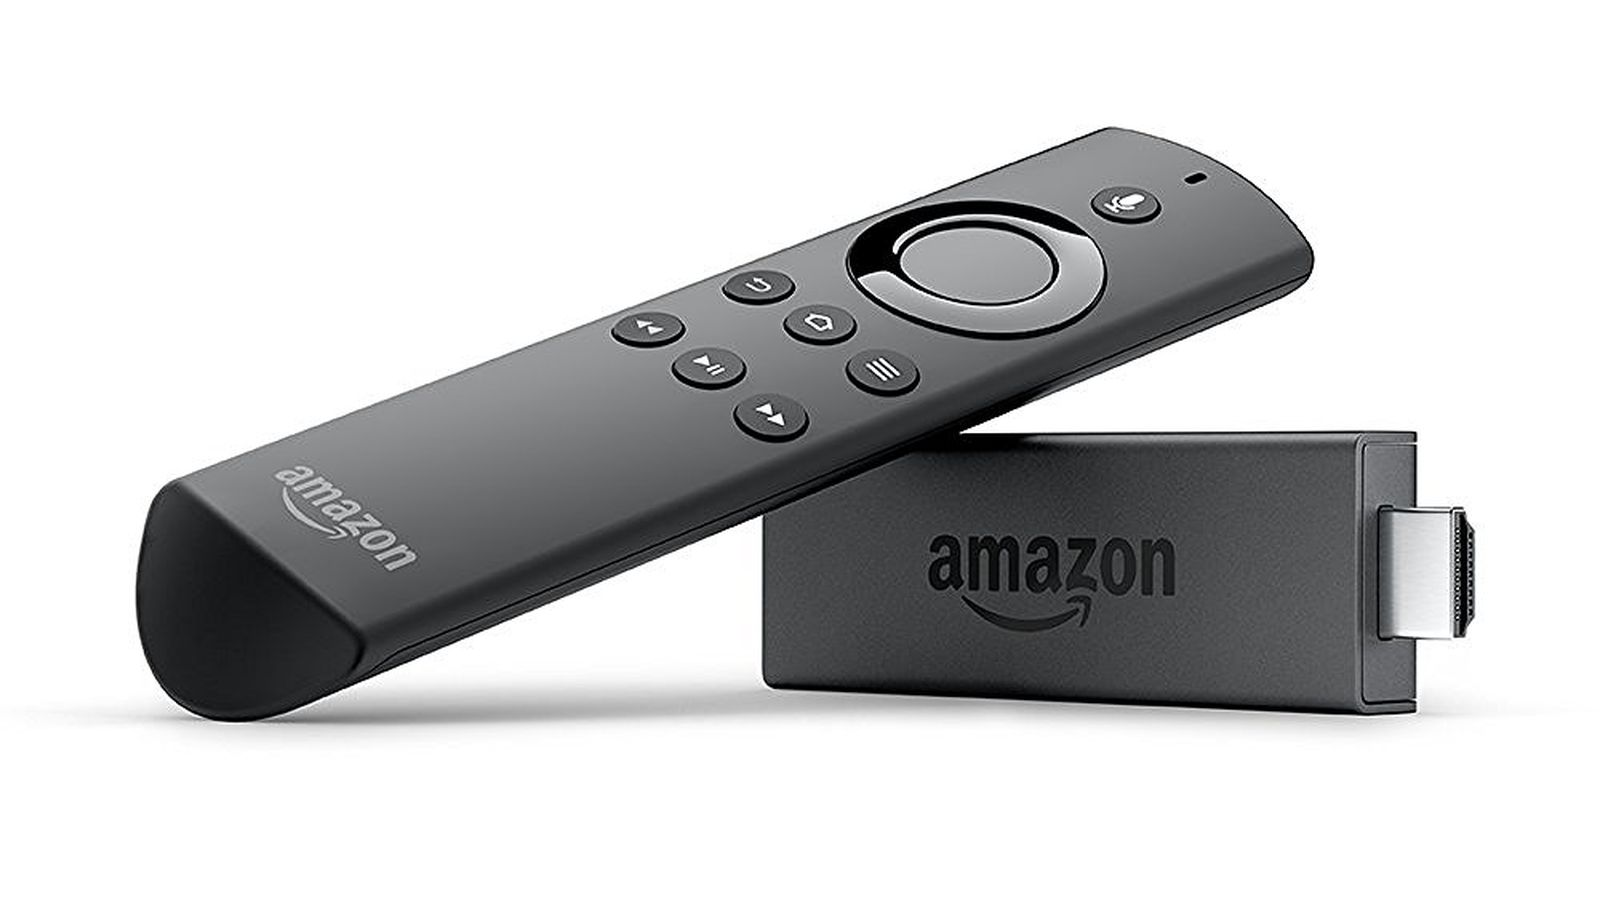 Amazon_Fire_TV_Stick_with_Alexa_Voice_Remote.0.0 Amazon Fire TV Stick